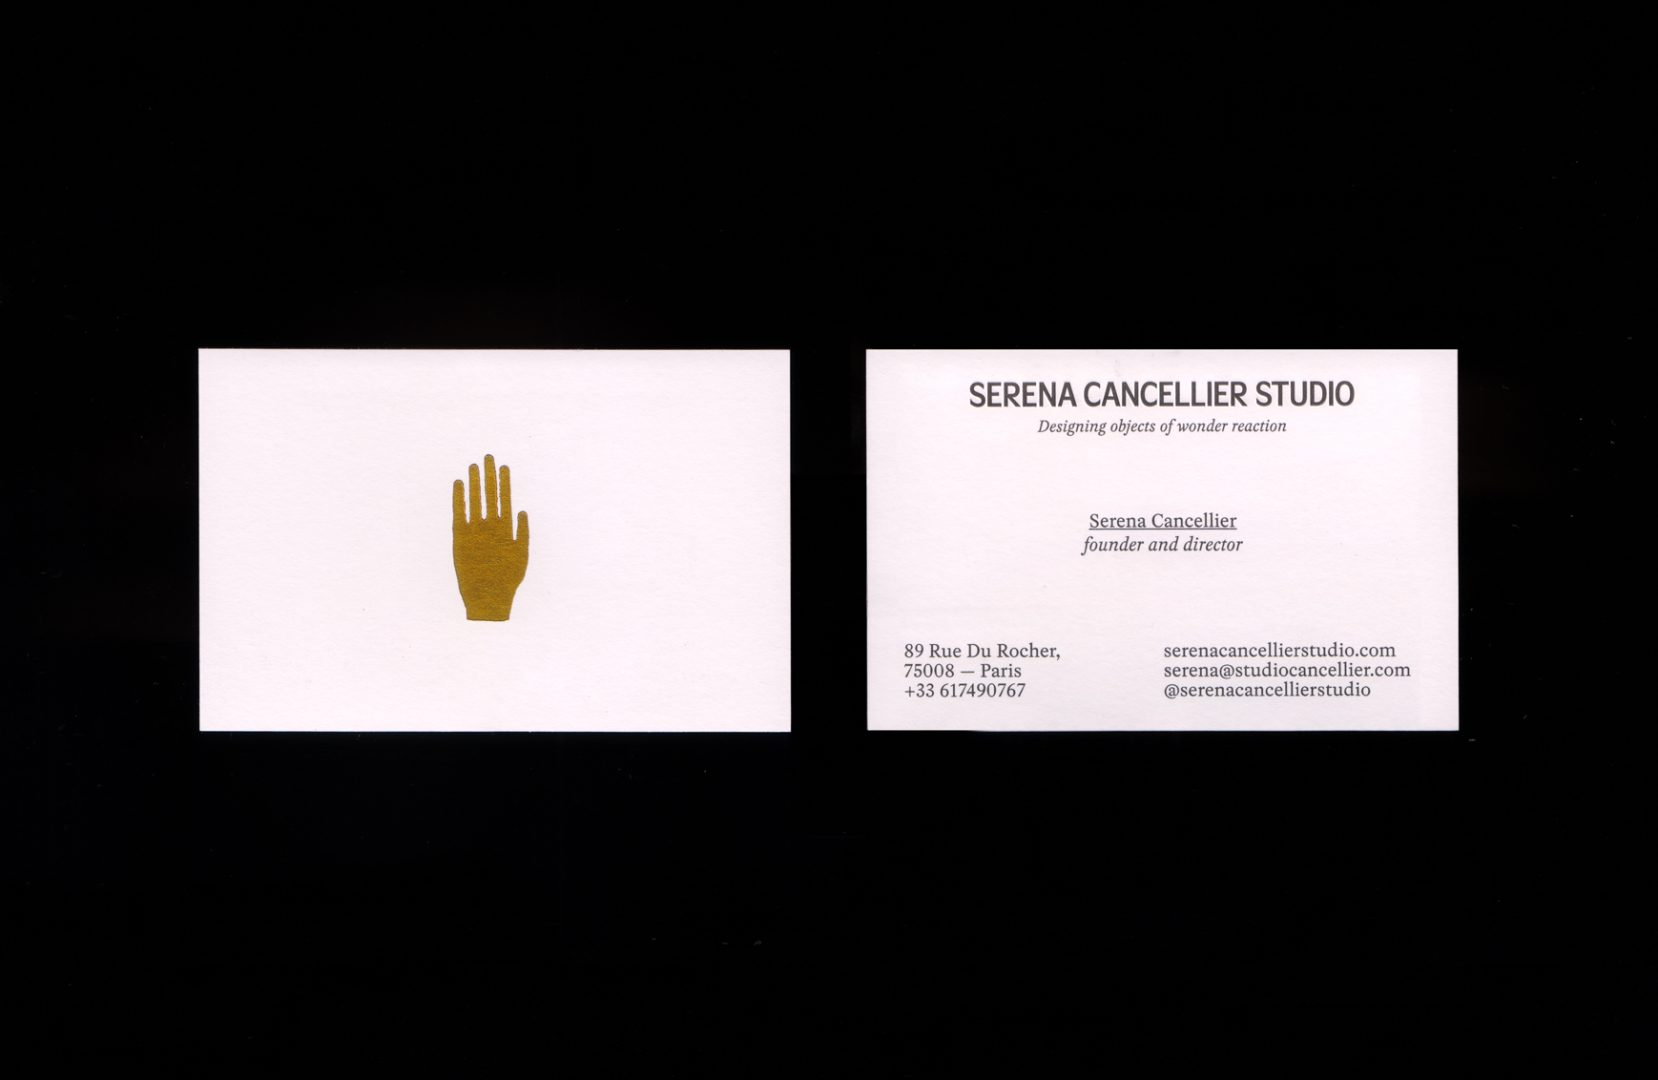 Serena Cancellier Studio, Art Direction and Branding, Photographed by Riccardo Raspa